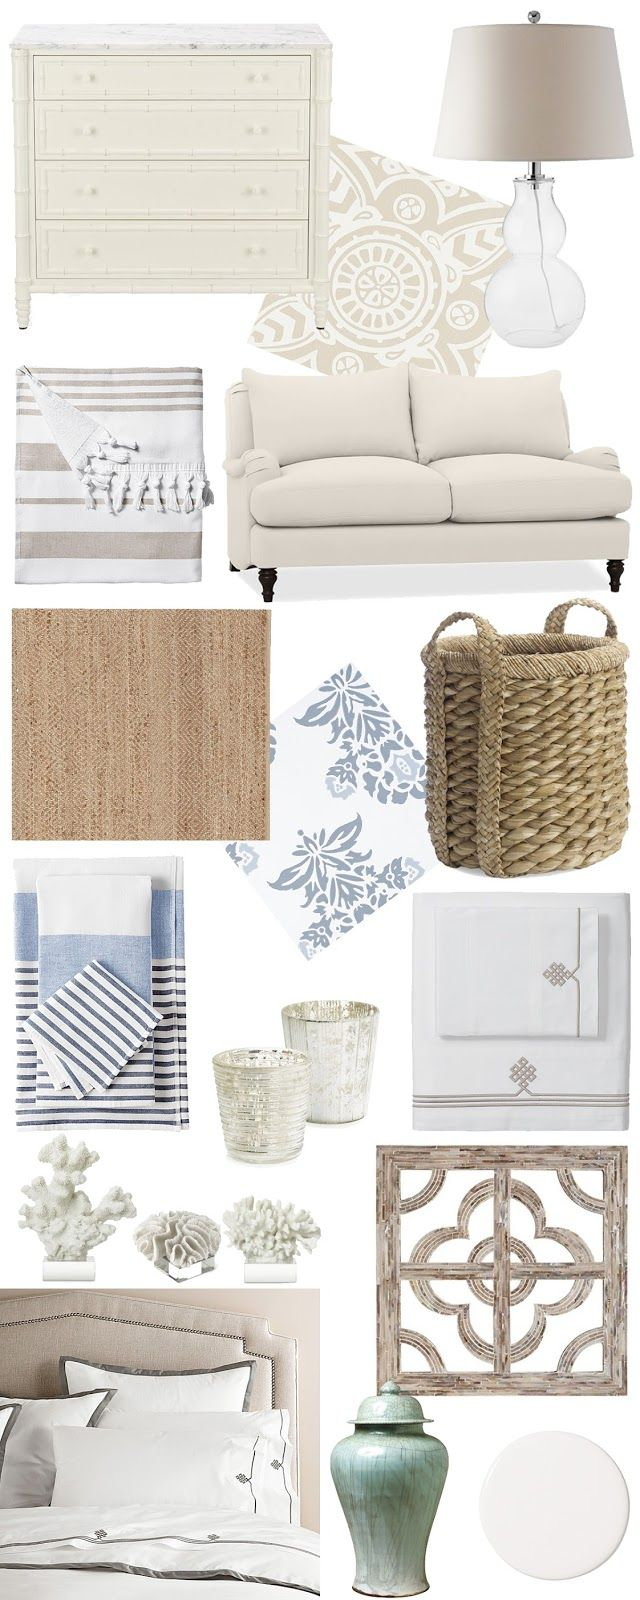 Best 25  Coastal furniture ideas on Pinterest   Beach style seat cushions   Blue dinning room furniture and White furniture sets. Best 25  Coastal furniture ideas on Pinterest   Beach style seat